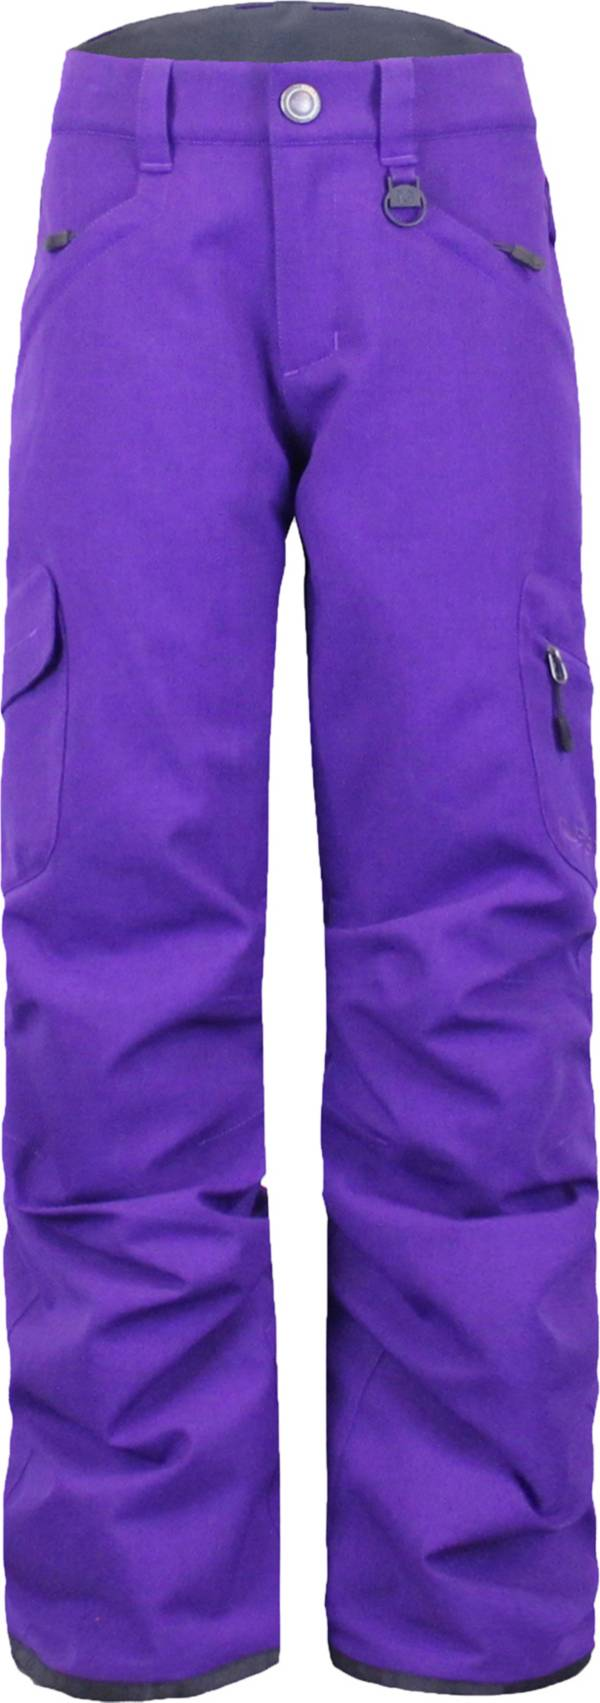 Boulder Gear Girls' Ravish Insulated Pants product image